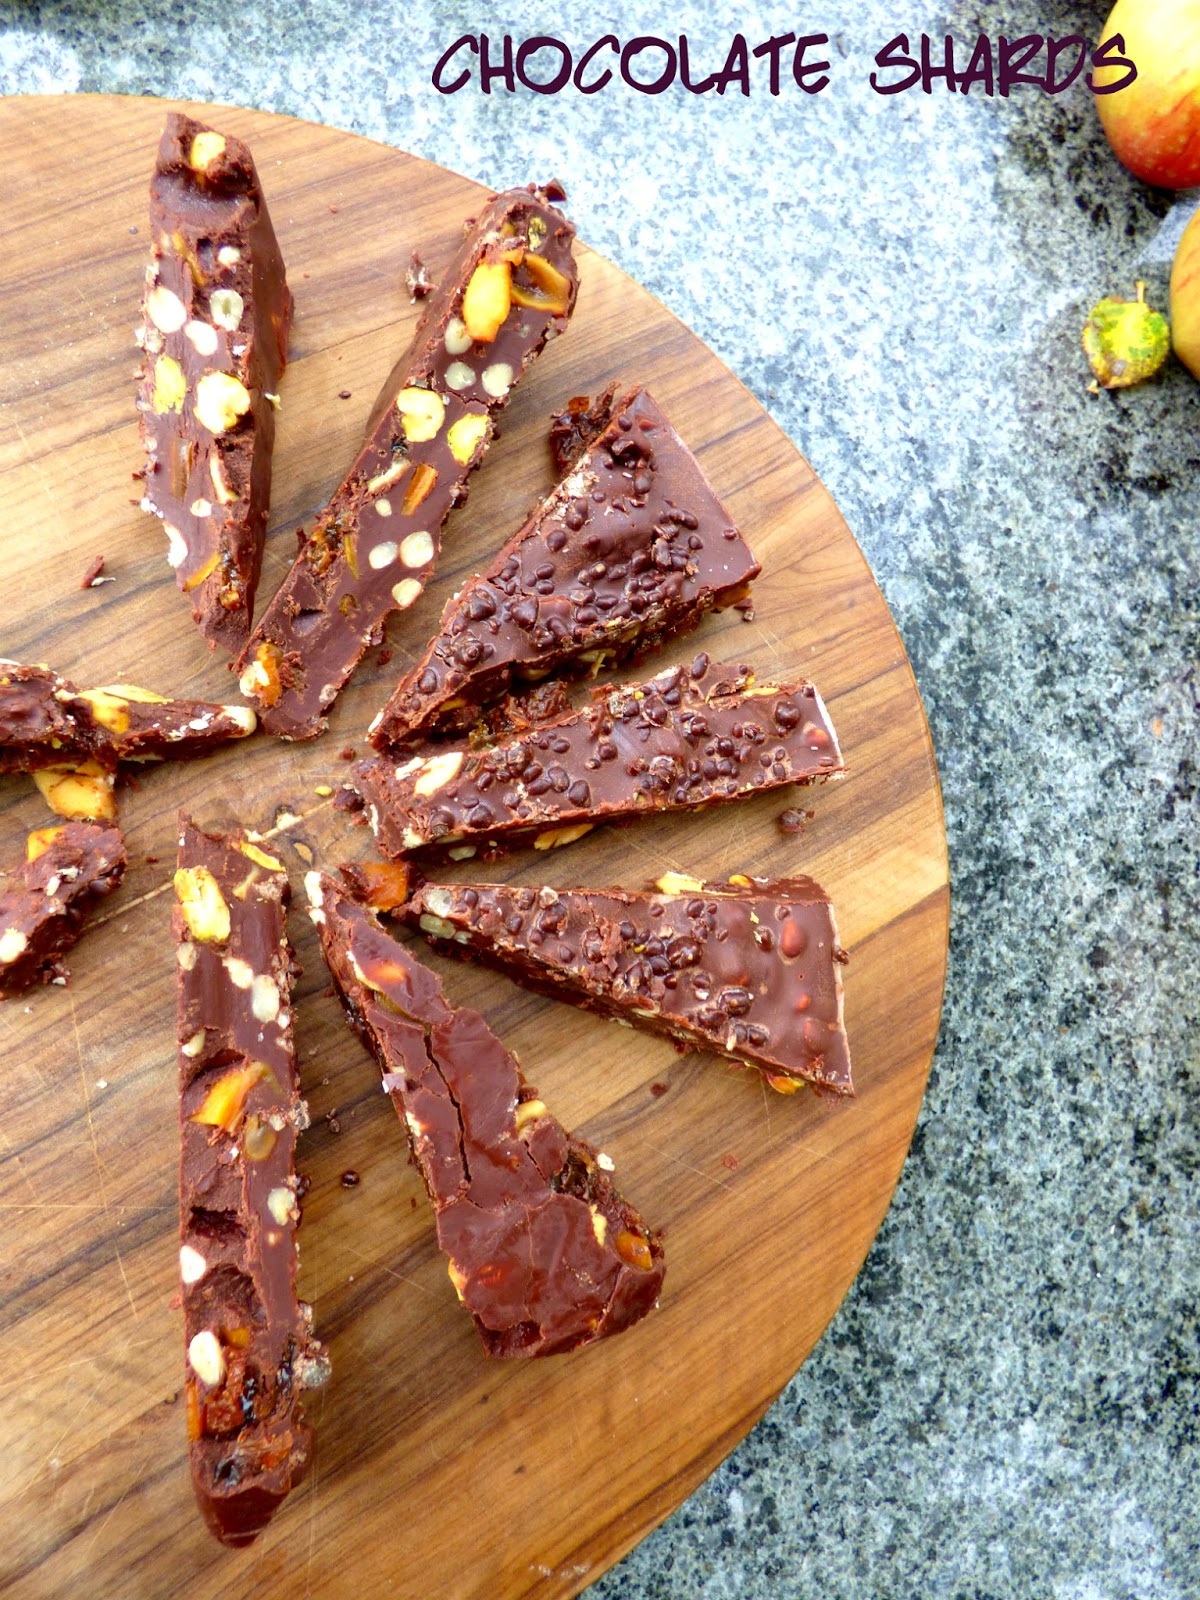 Chez Maximka Fruit Amp Nut Chocolate Shards With Popping Candy